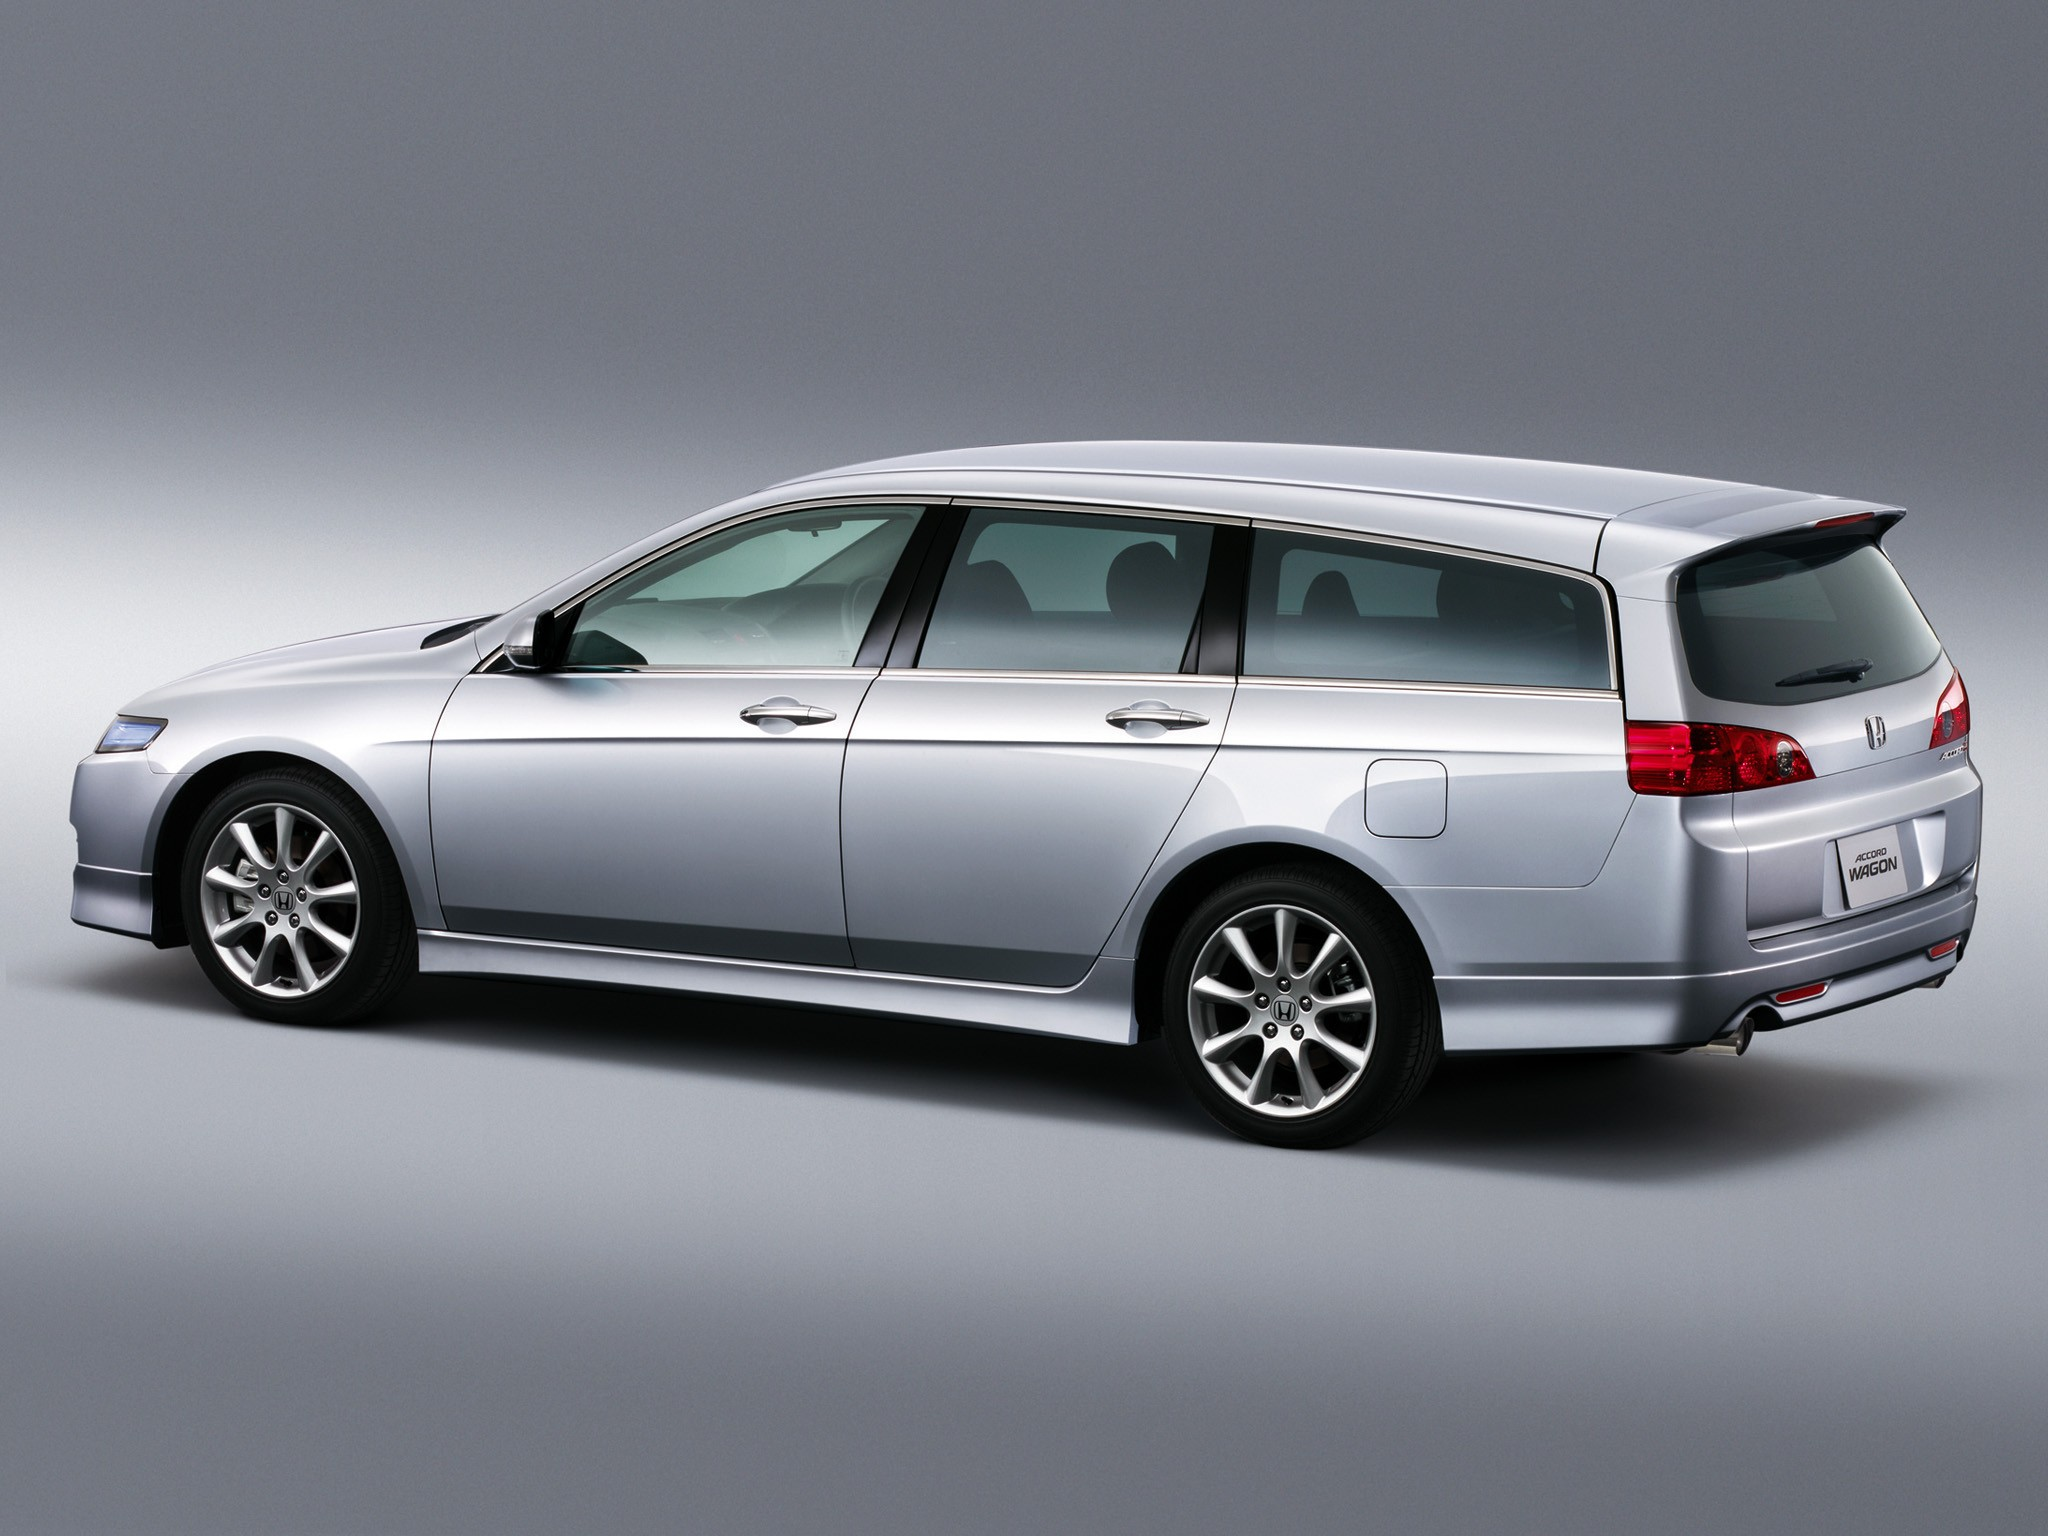 HONDA Accord Tourer - 2005, 2006, 2007, 2008 - autoevolution